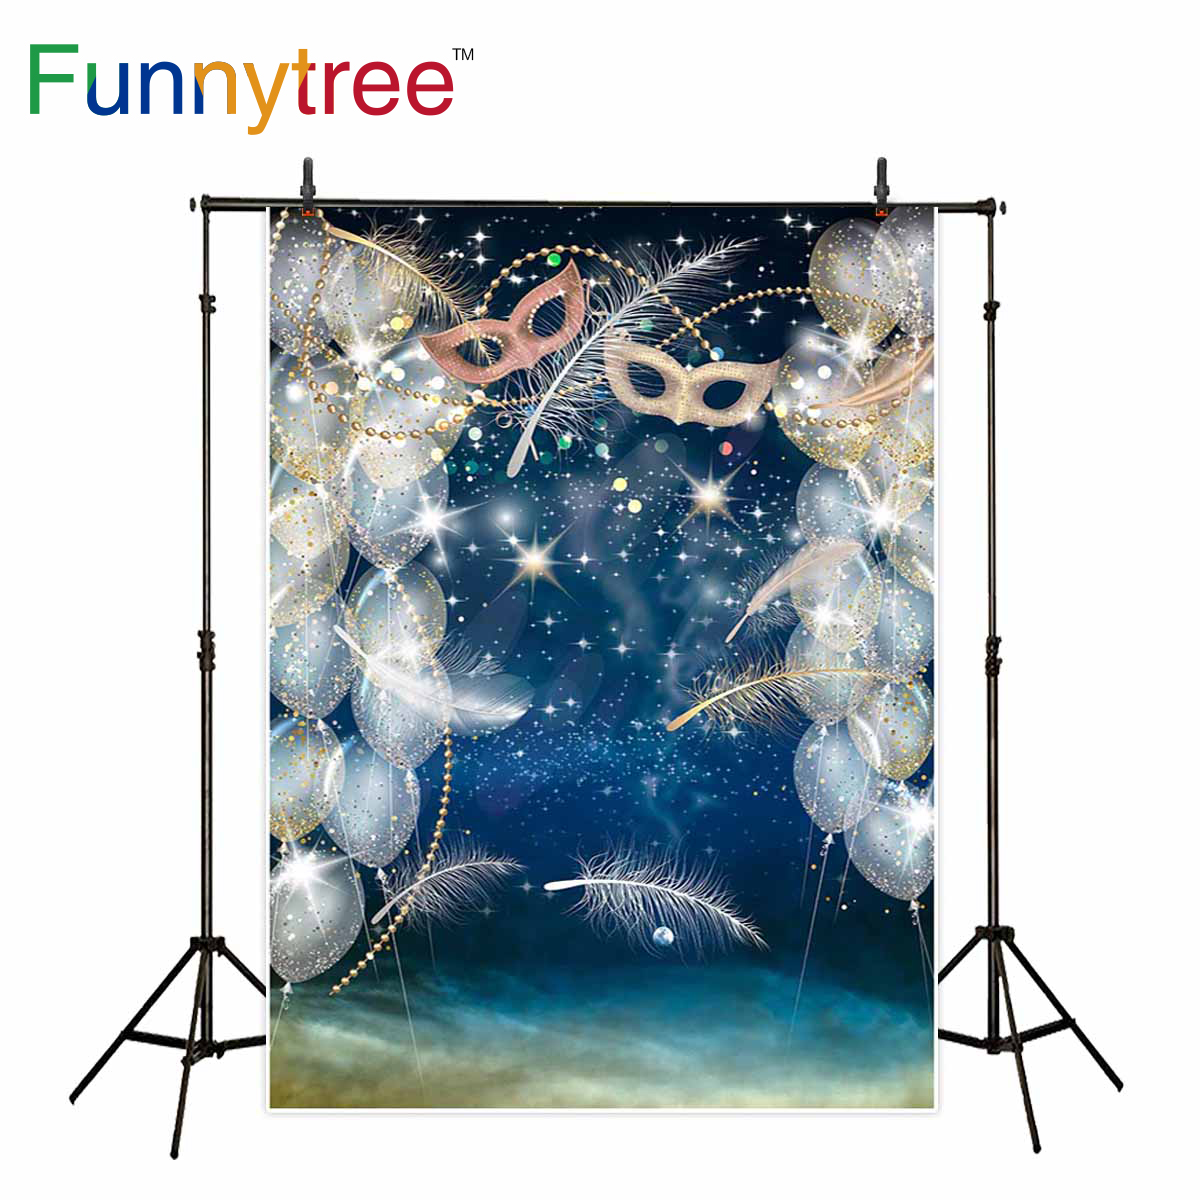 Funnytree photography background masquerade luxury party feather glitter balloons celebrate backdrop photographer gift photocall